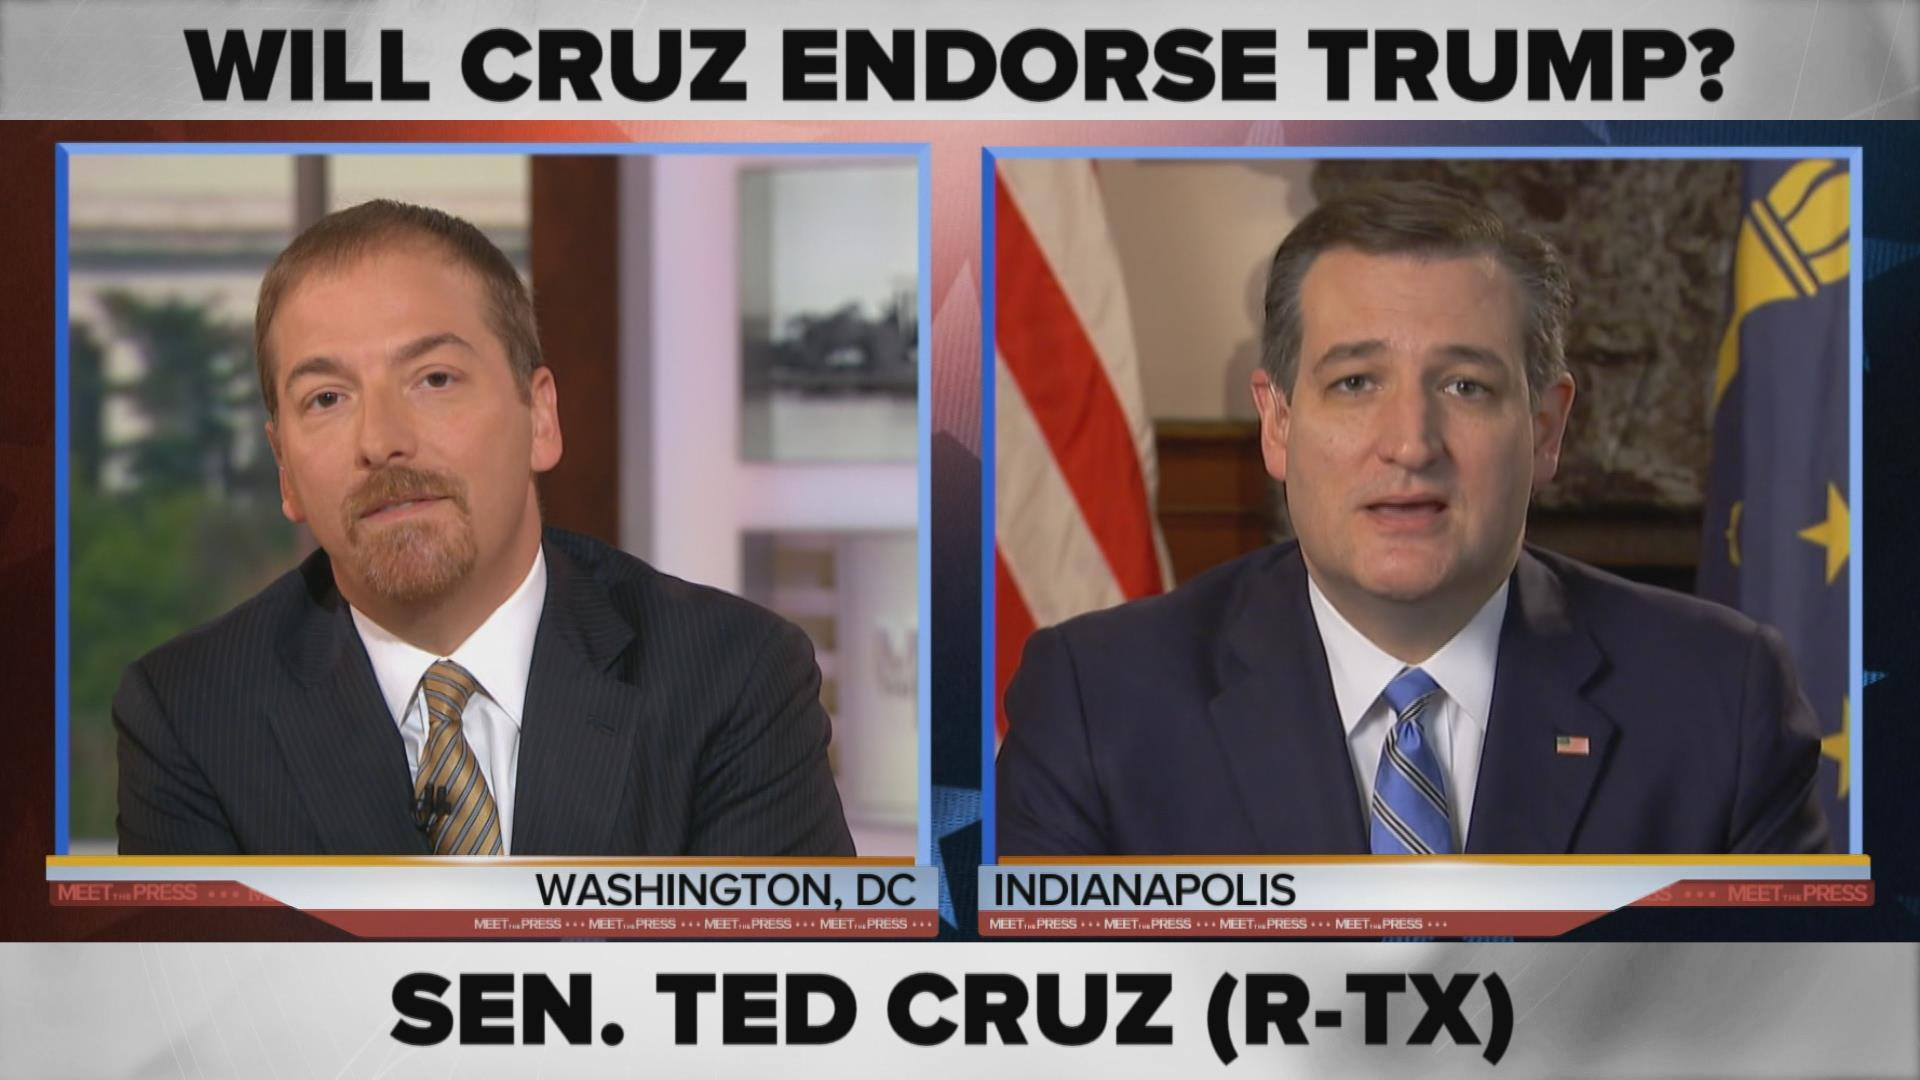 ComPRESSed: Ted Cruz and John Brennan